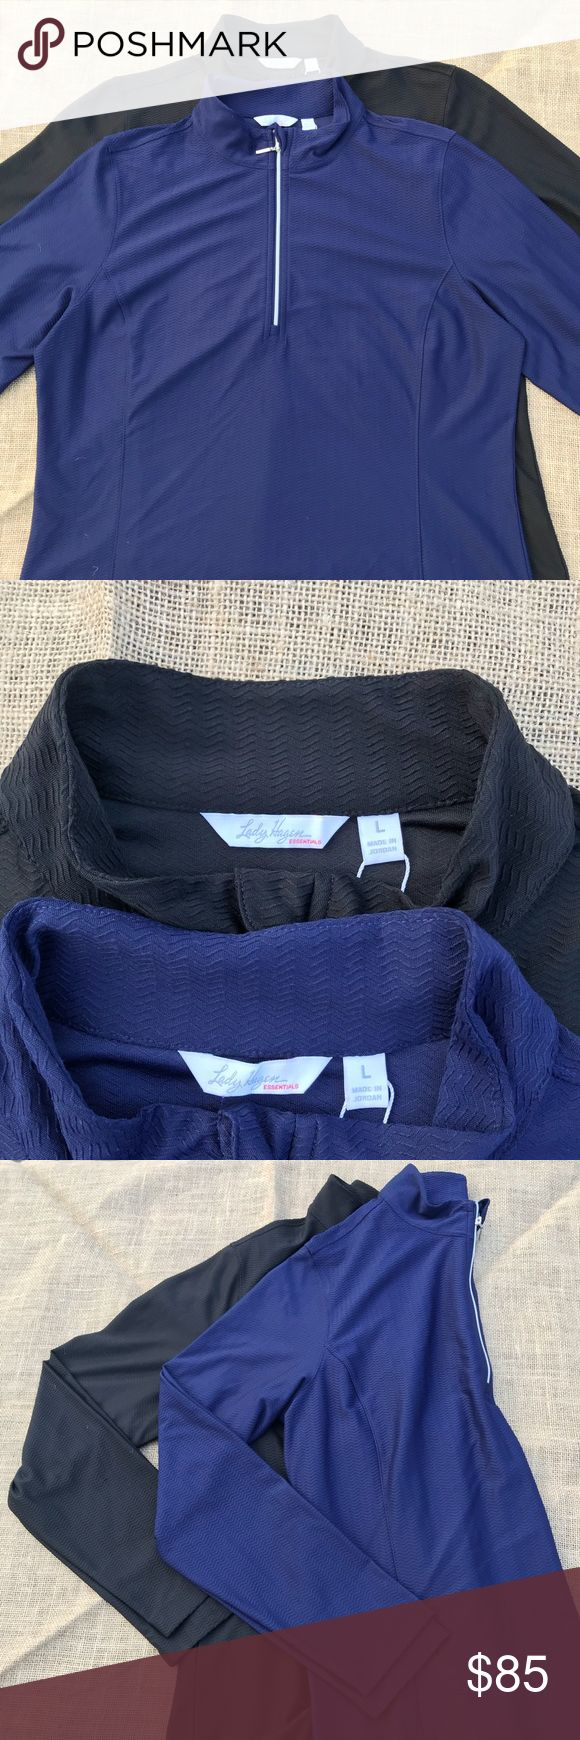 2 Lady Hagen essentials quart zipper long sleeve Bundle Set of 2 Lady Hagen quarter zip long sleeve shirt. Colors are black, navy eclipse. Has UV protection along with hydrodri fabric keeps you cool and dry by moving sweat away from your skin. I personally use these for working out and they are beyond amazing in wicking away moisture. Retail $50 each. Lady Hagen Tops Tees - Long Sleeve